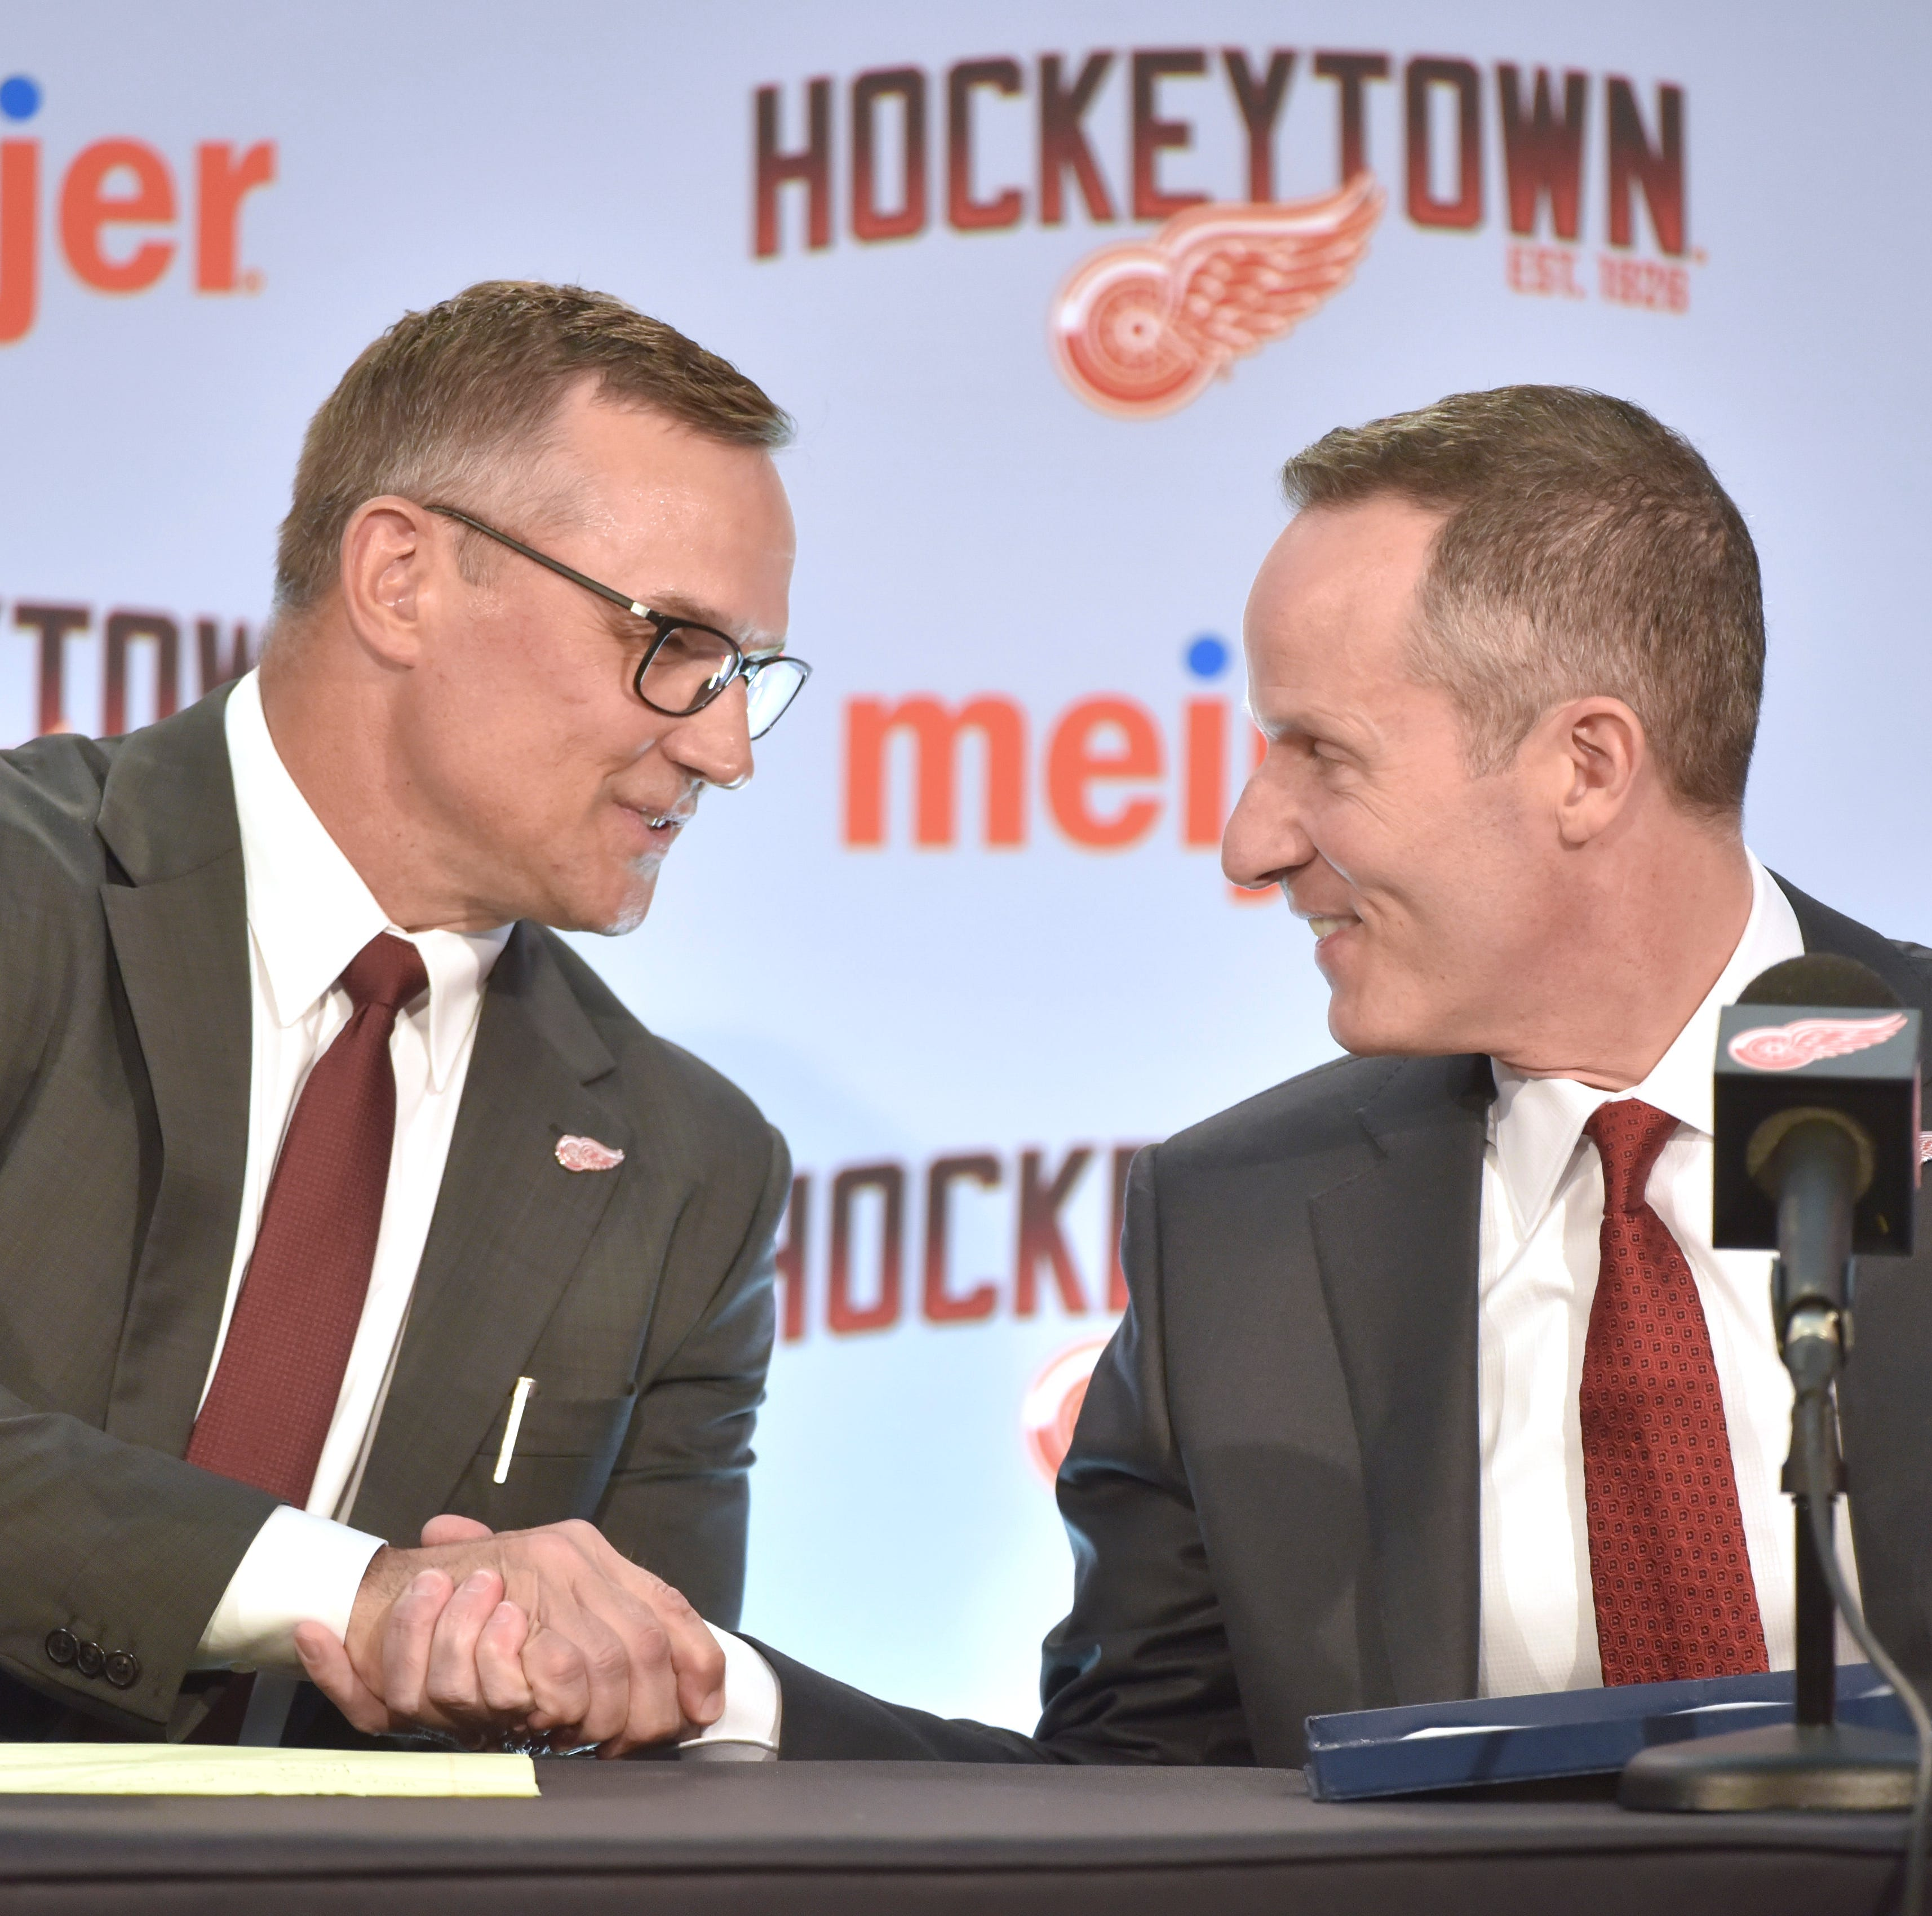 Wojo: Steve Yzerman is back where he belongs